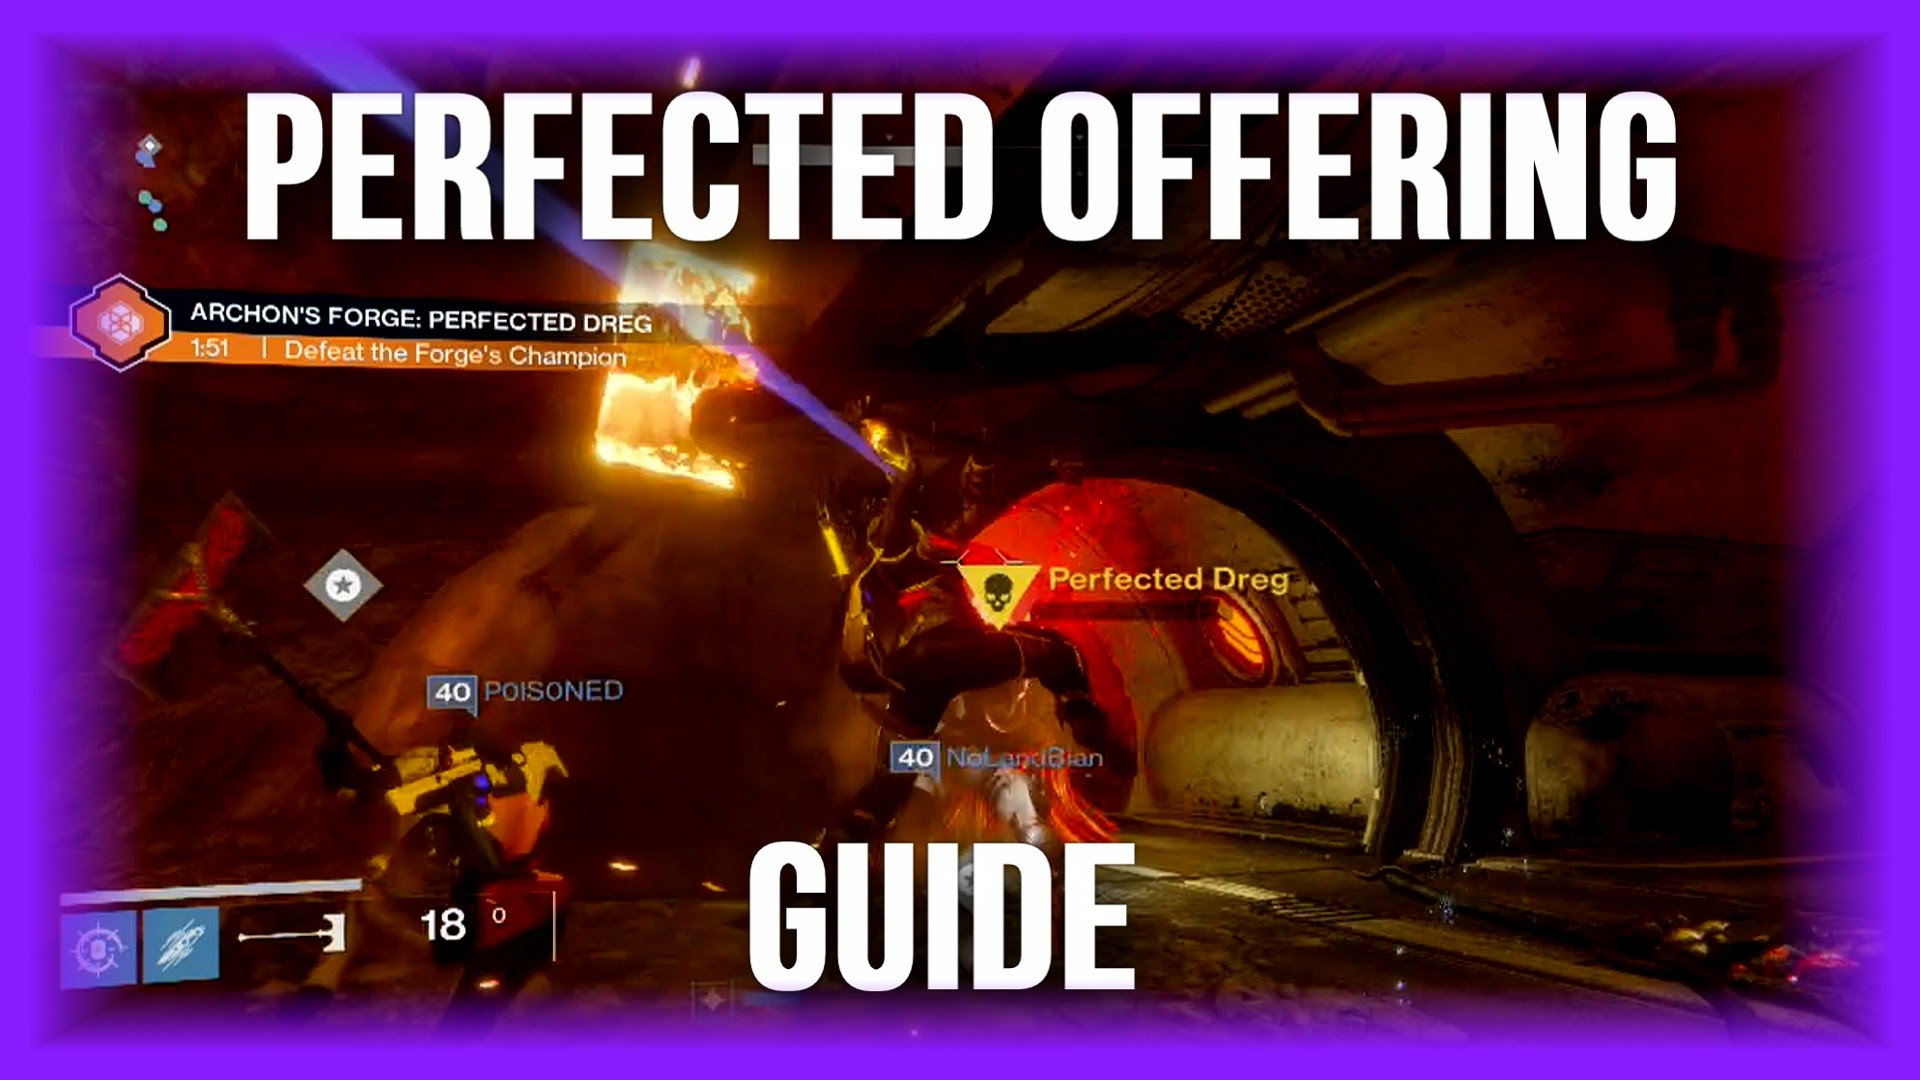 Destiny – Perfect Siva Offering Guide and Rewards (Easy Archon Forge 6 Man Strat)